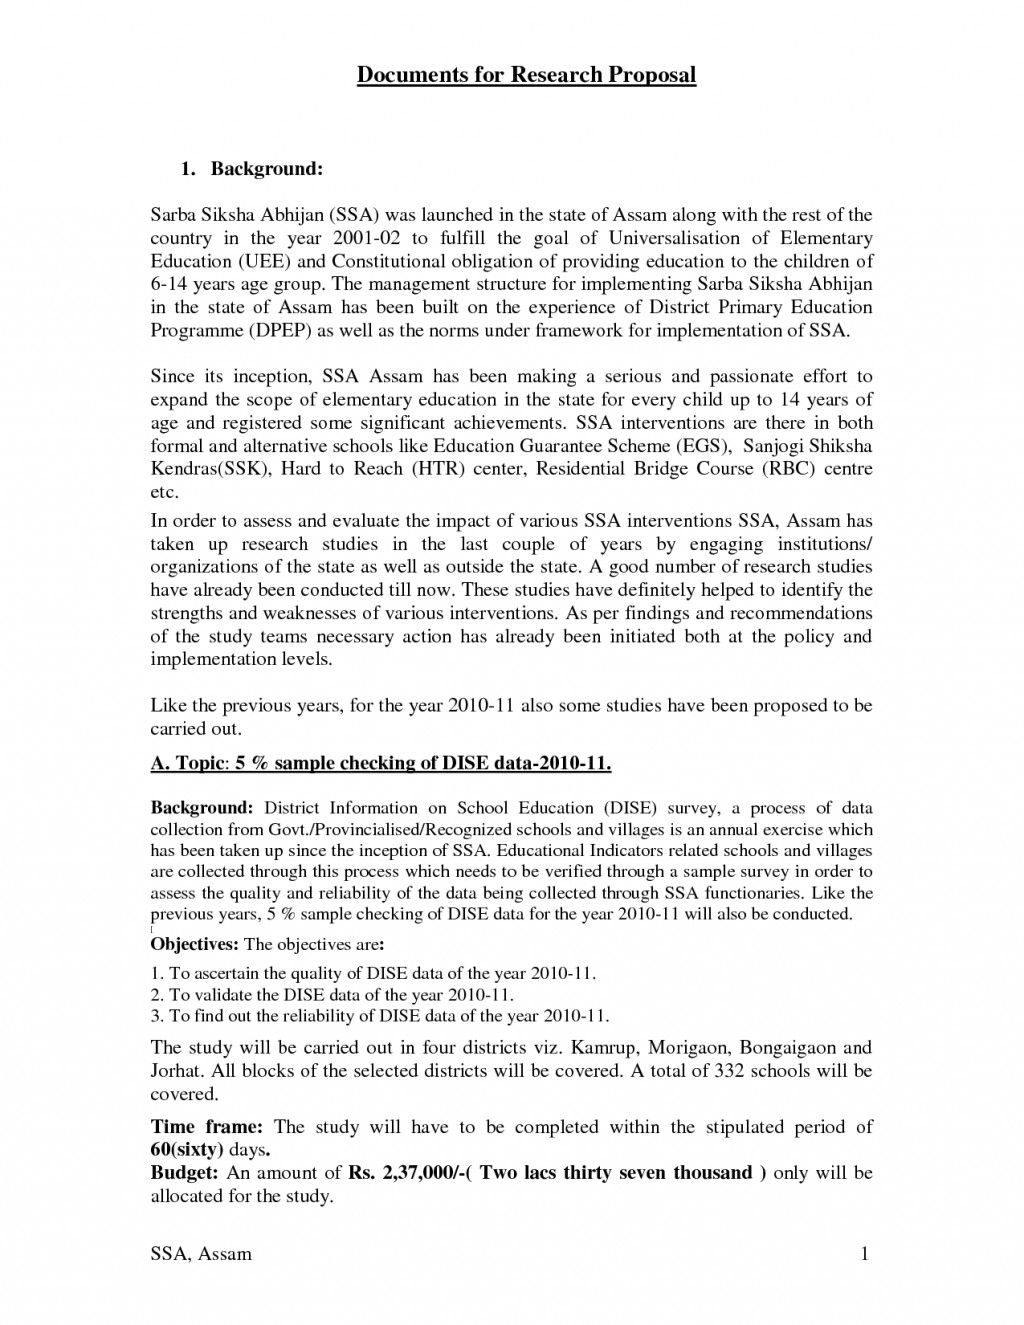 012 Research Paper Proposal Sample Topic 501313 Awesome Plan Template Mla Format Large